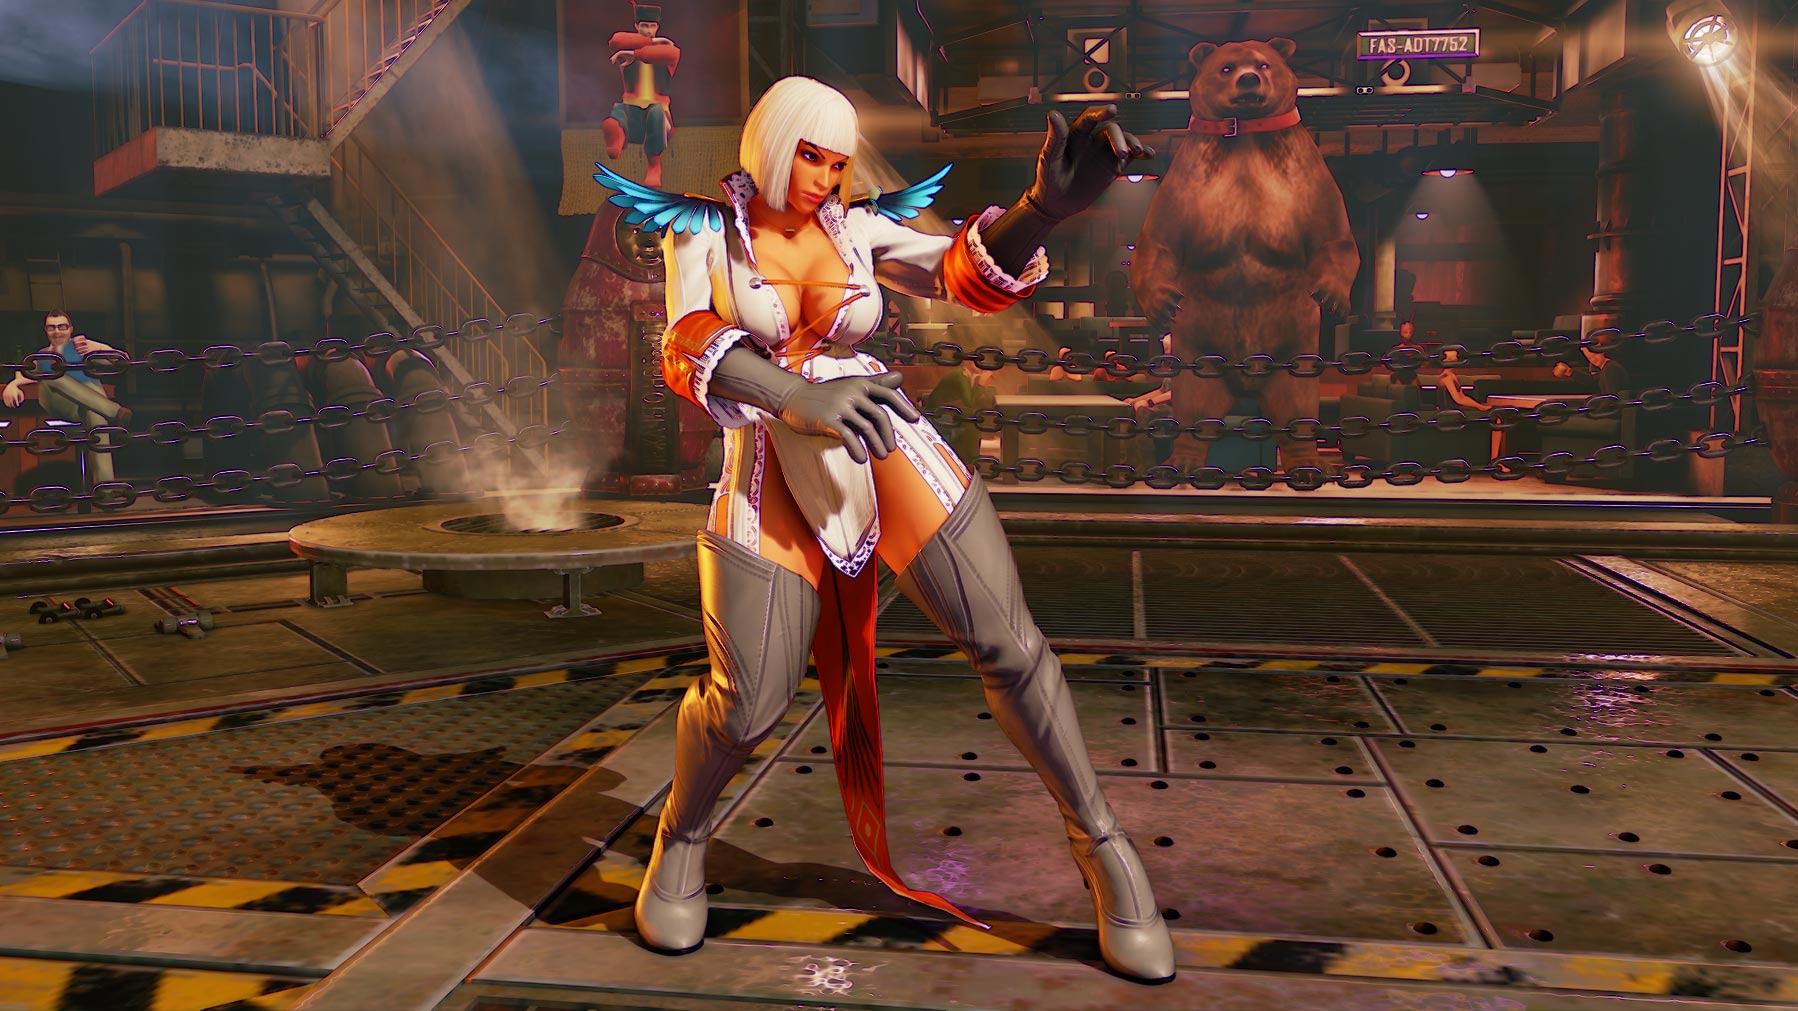 Devil May Cry, Air Man costumes, Survival mode changes in Street Fighter 5 4 out of 14 image gallery